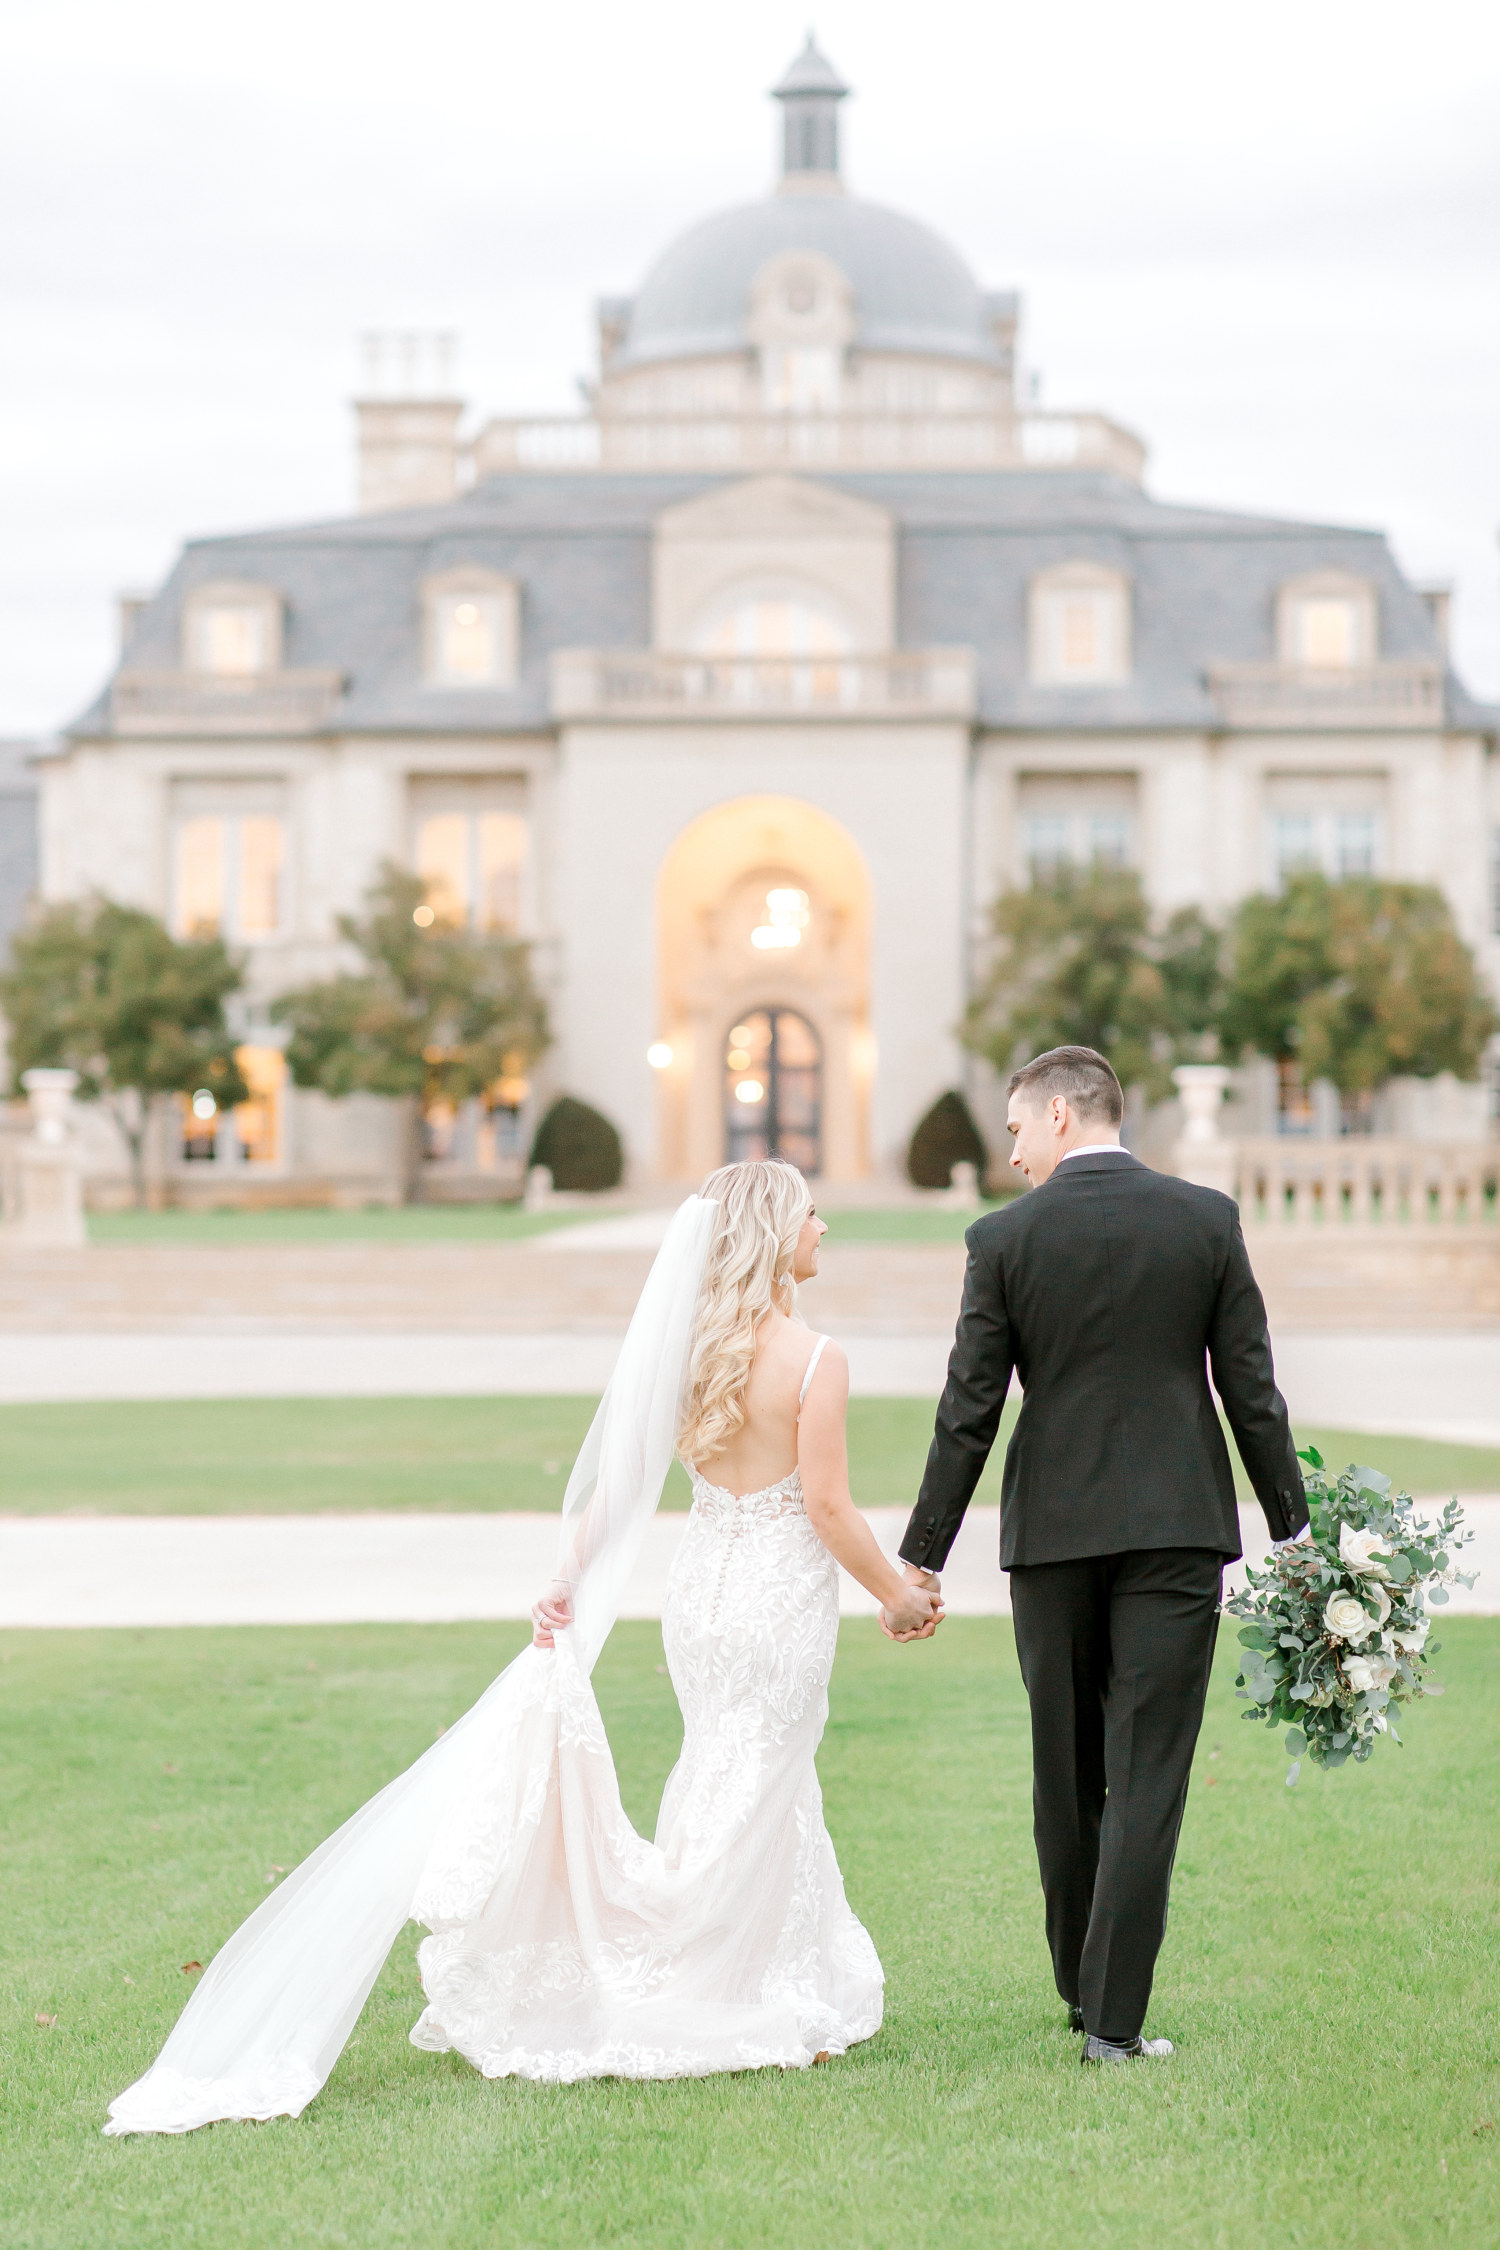 Hannah Way Photography - Dallas wedding photographer - luxury weddings - luxury wedding photographer - dfw wedding photographer - best wedding photographer - Dallas best wedding photographer - The Olana - The Olana wedding - The Olana wedding photographer